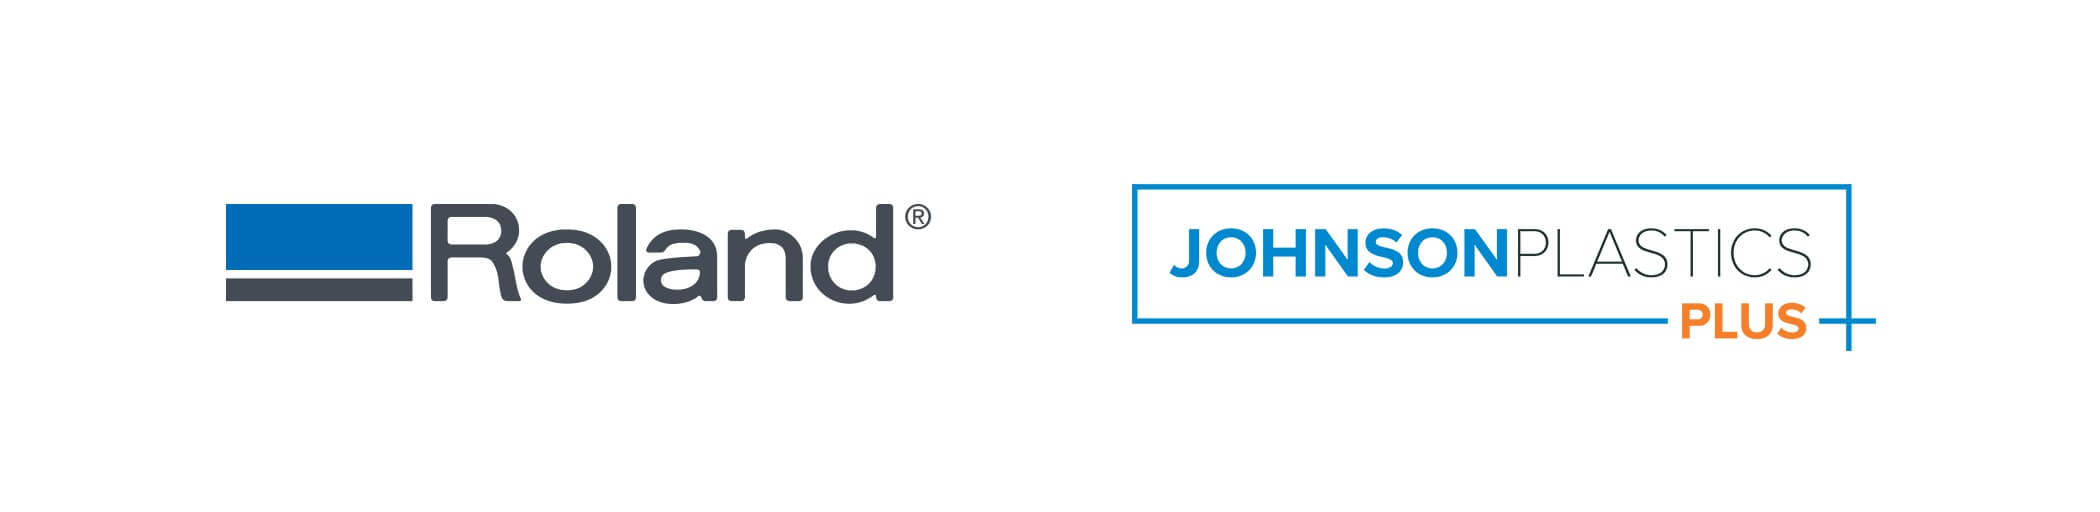 Roland DGA Signs Johnson Plastics Plus as new authorized rotary engraving dealer.